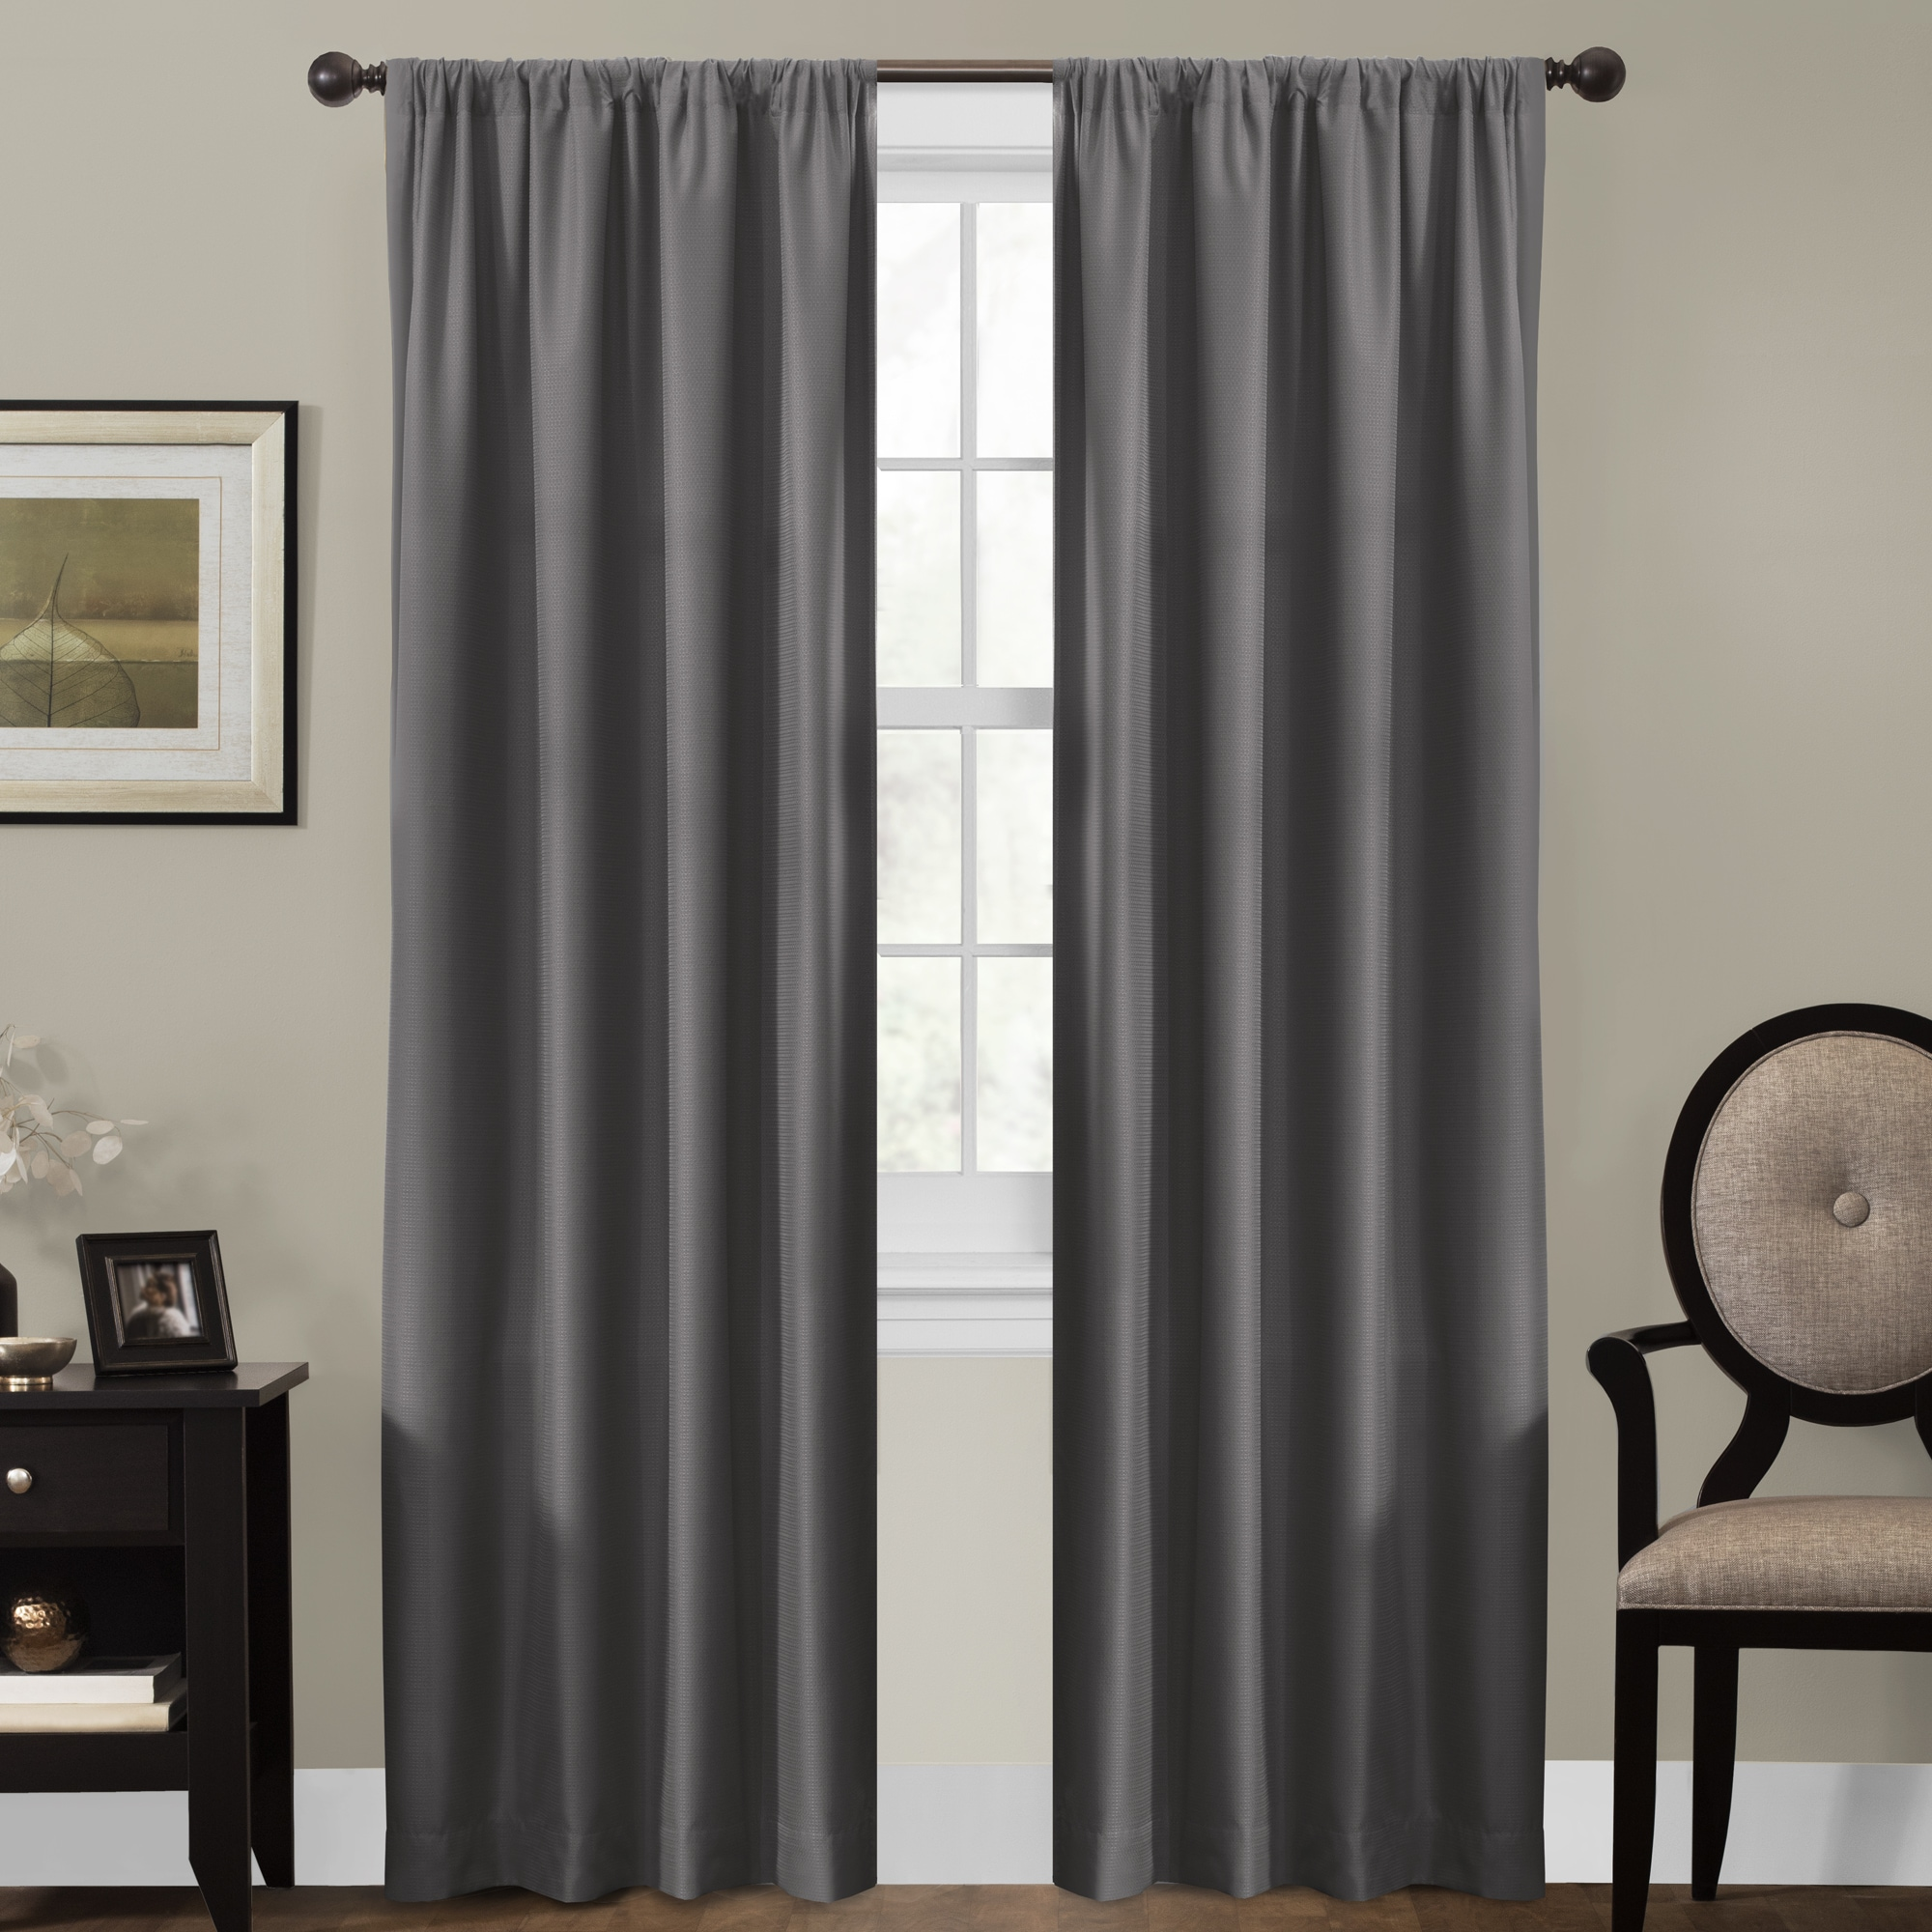 decor window single lined grommet room panel shop allen curtains treatments inch darkening drapes curtain winbourne blinds pl lowes roth polyester thermal at home com